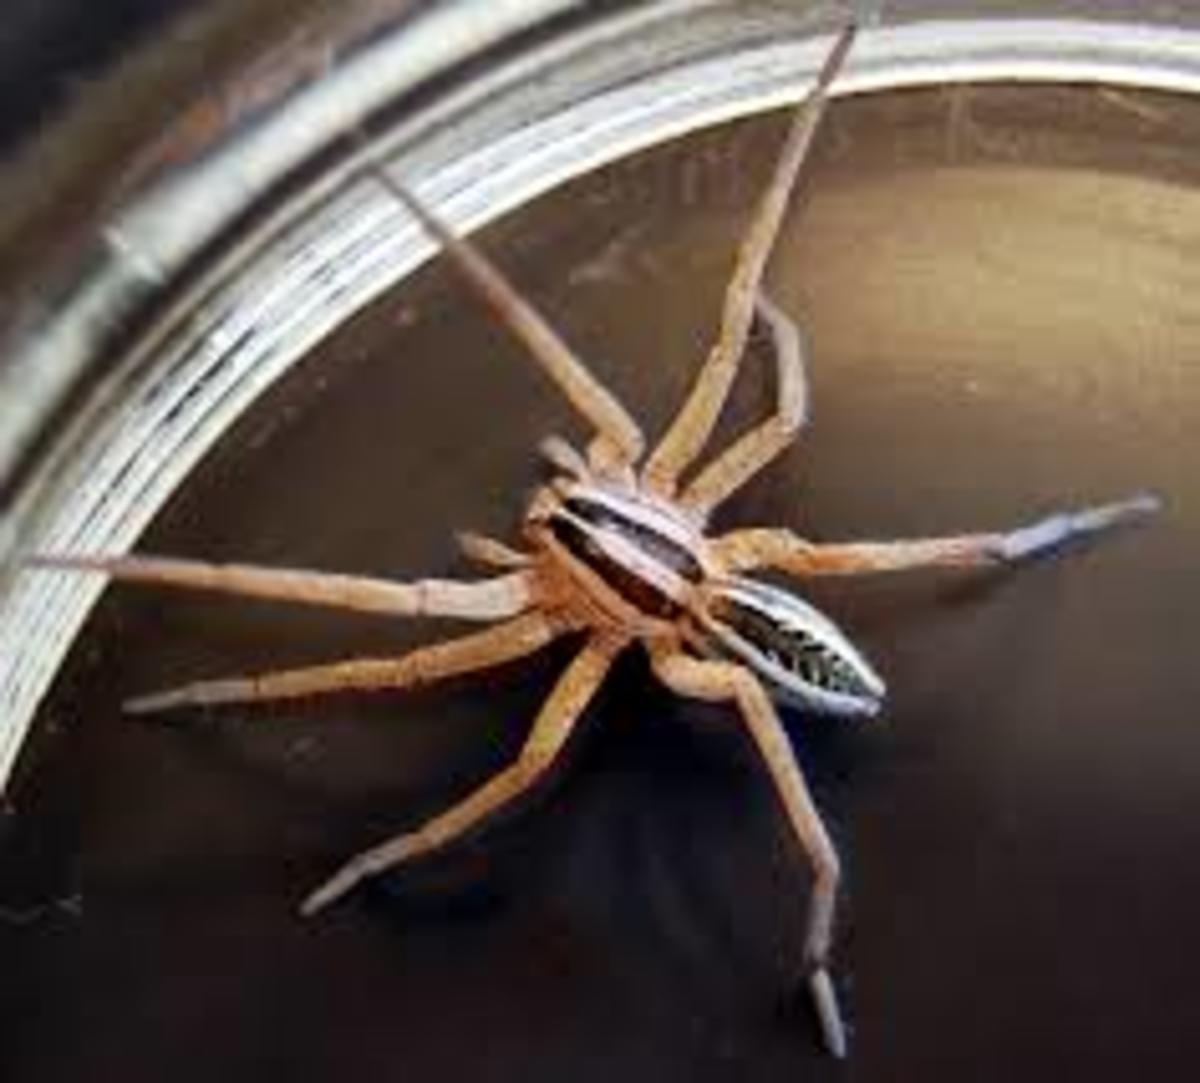 The Wolf Spider, Venomous, but Preys on More Dangerous Spiders